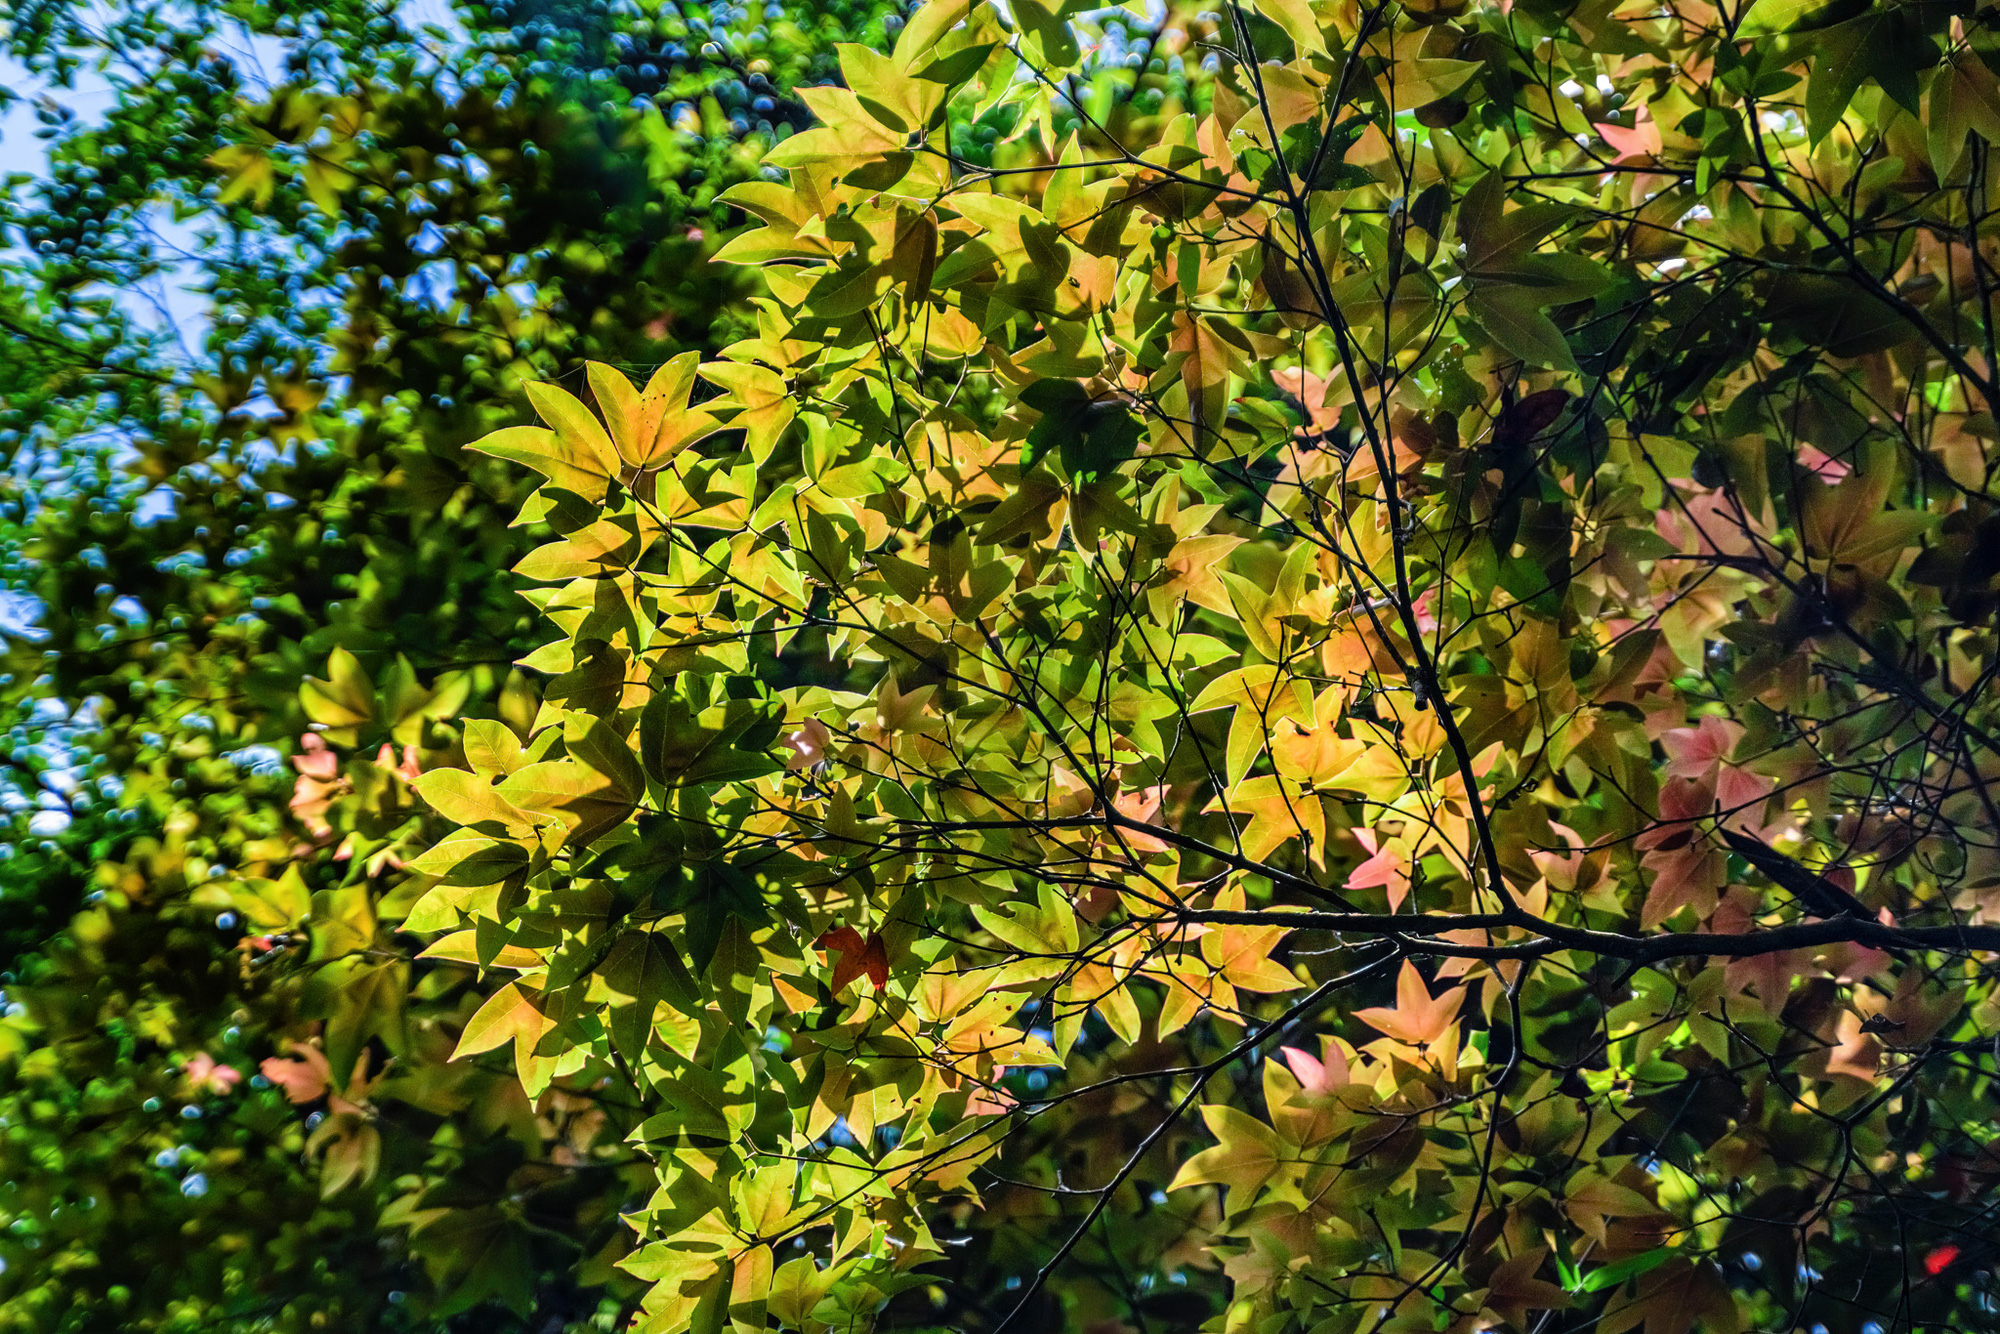 Tree leaves change color as sunlight passes through the canopy in Bach Ma National Park in Thua Thien-Hue Province, Vietnam. Photo: Tran Luu Anh Tuan / Tuoi Tre